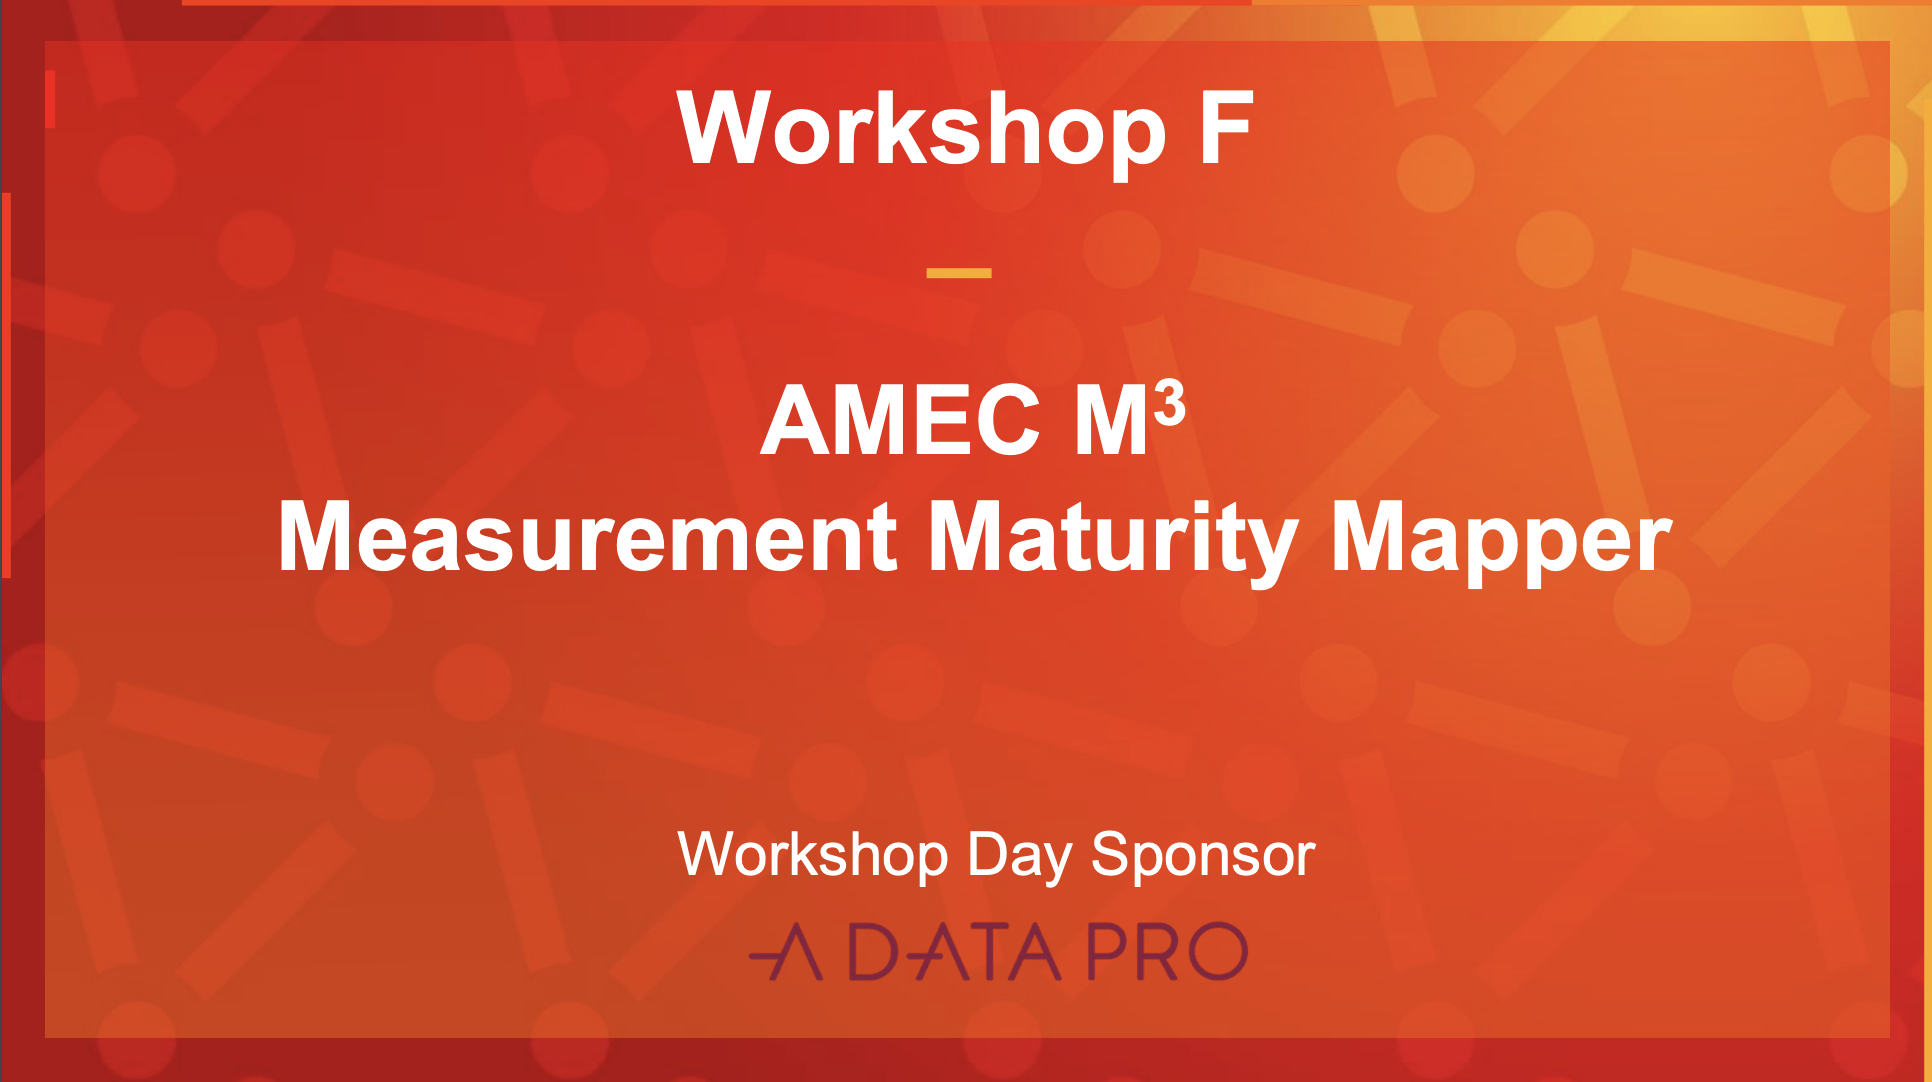 AMEC M3 Measurement Maturity Mapper